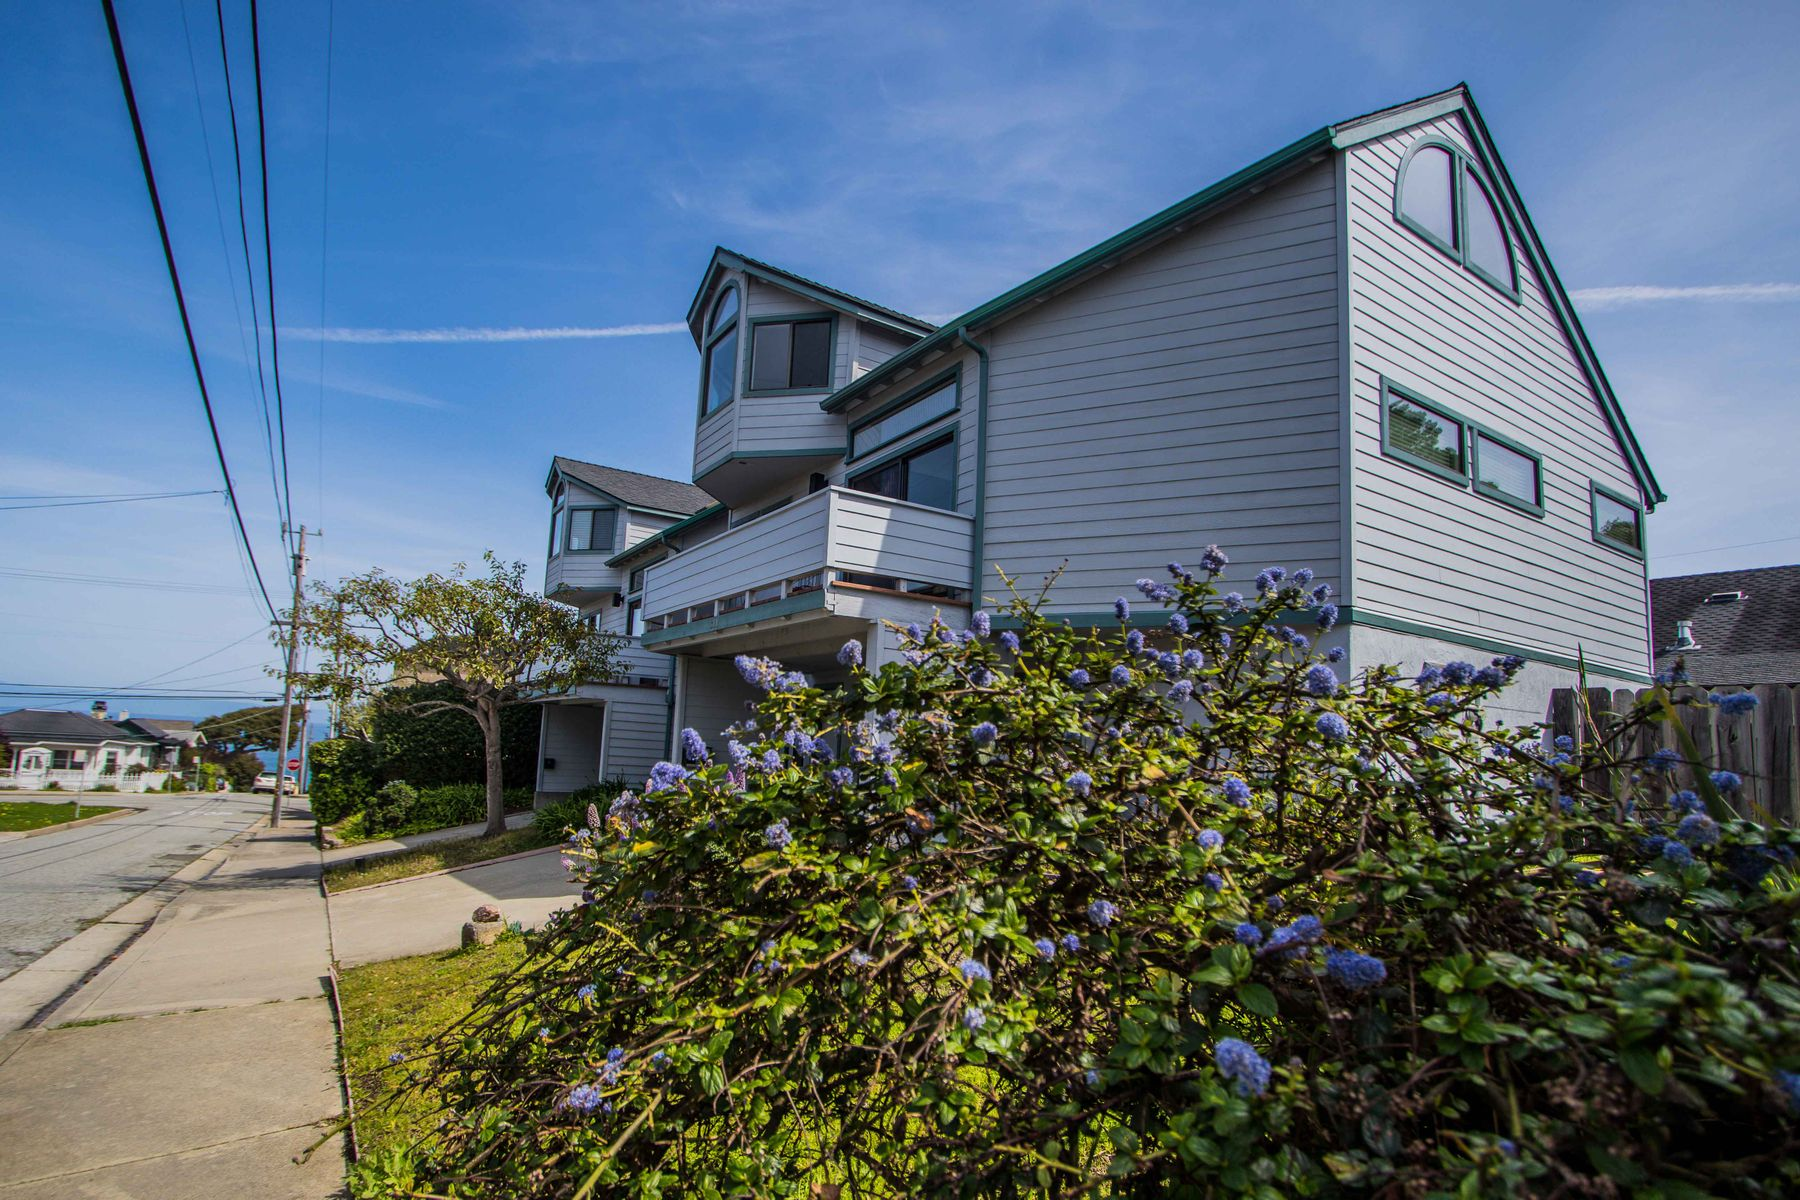 Multi-Family Homes for Sale at Beautiful PG Duplex 311 4th Street Pacific Grove, California 93950 United States